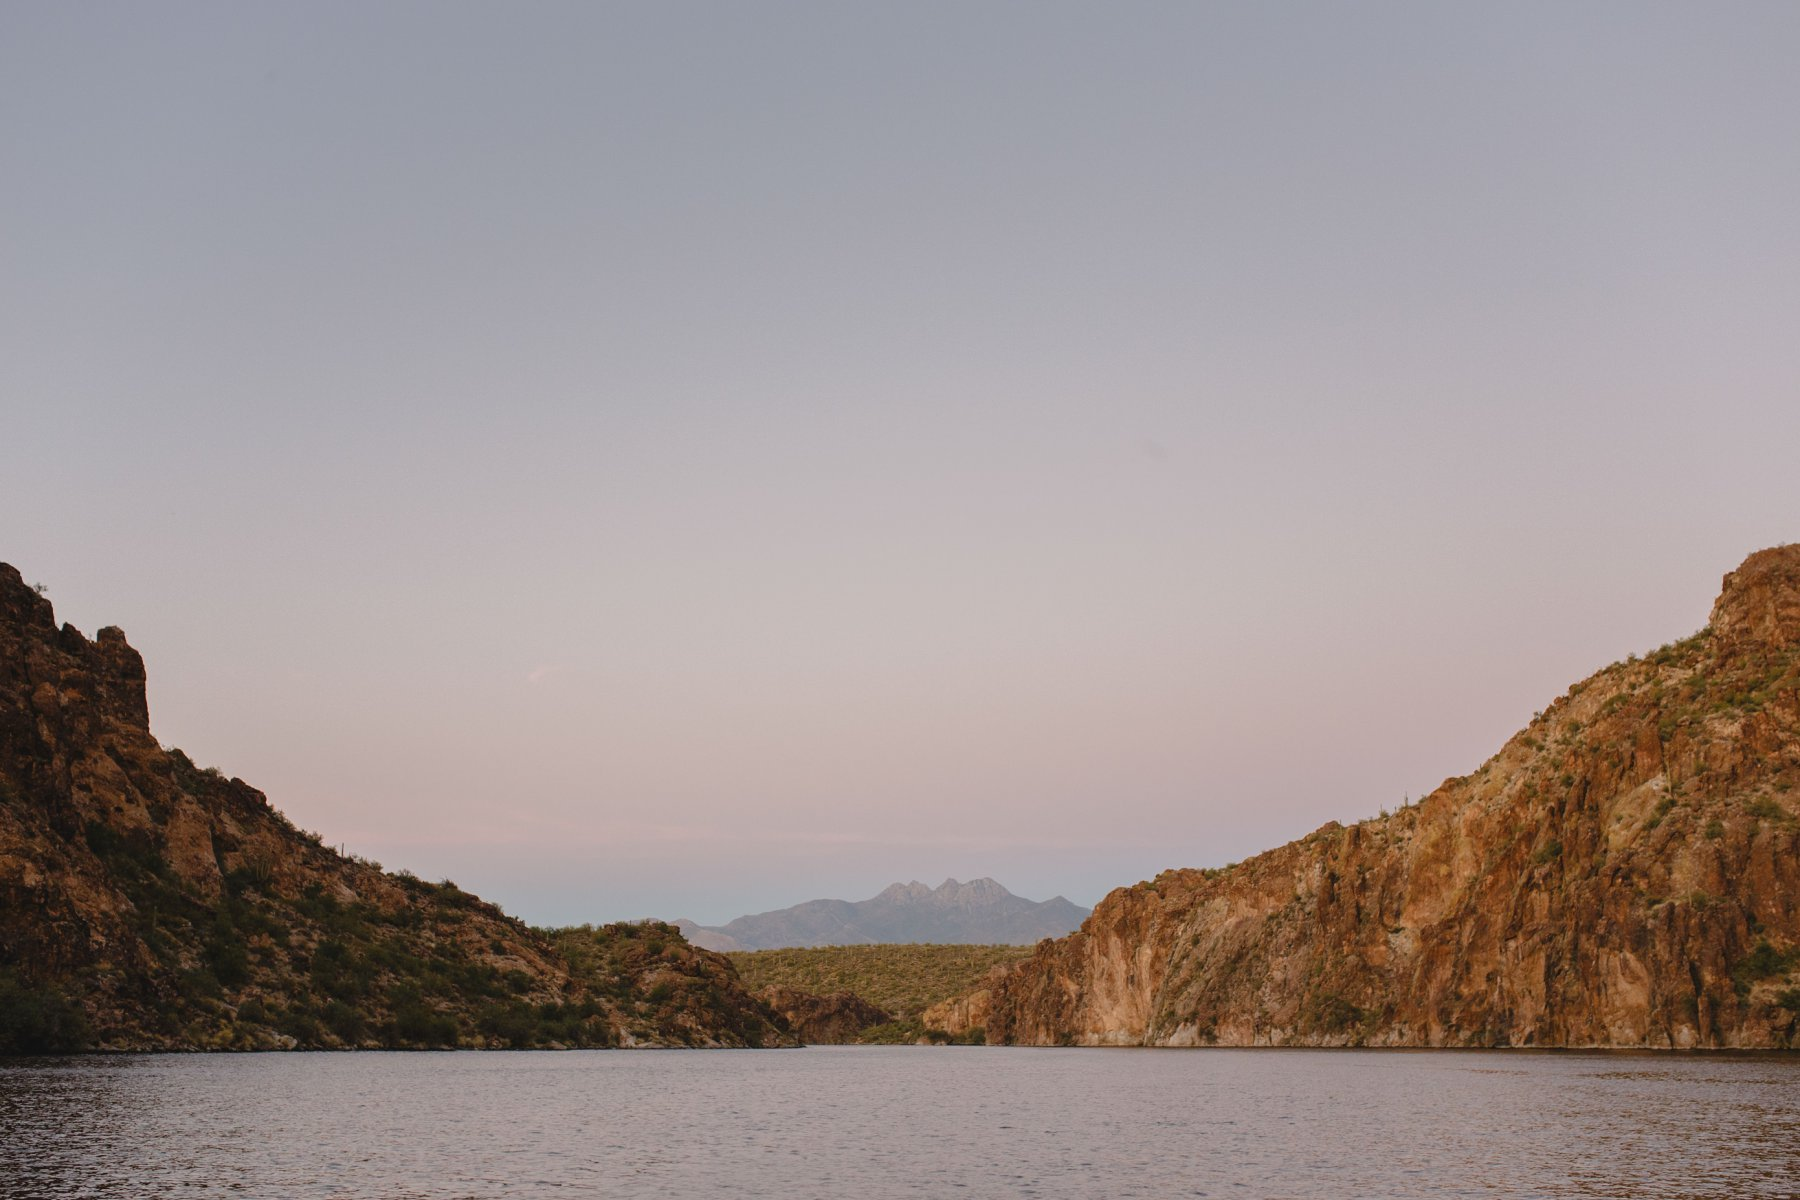 Four Peaks and Saguaro Lake at sunset